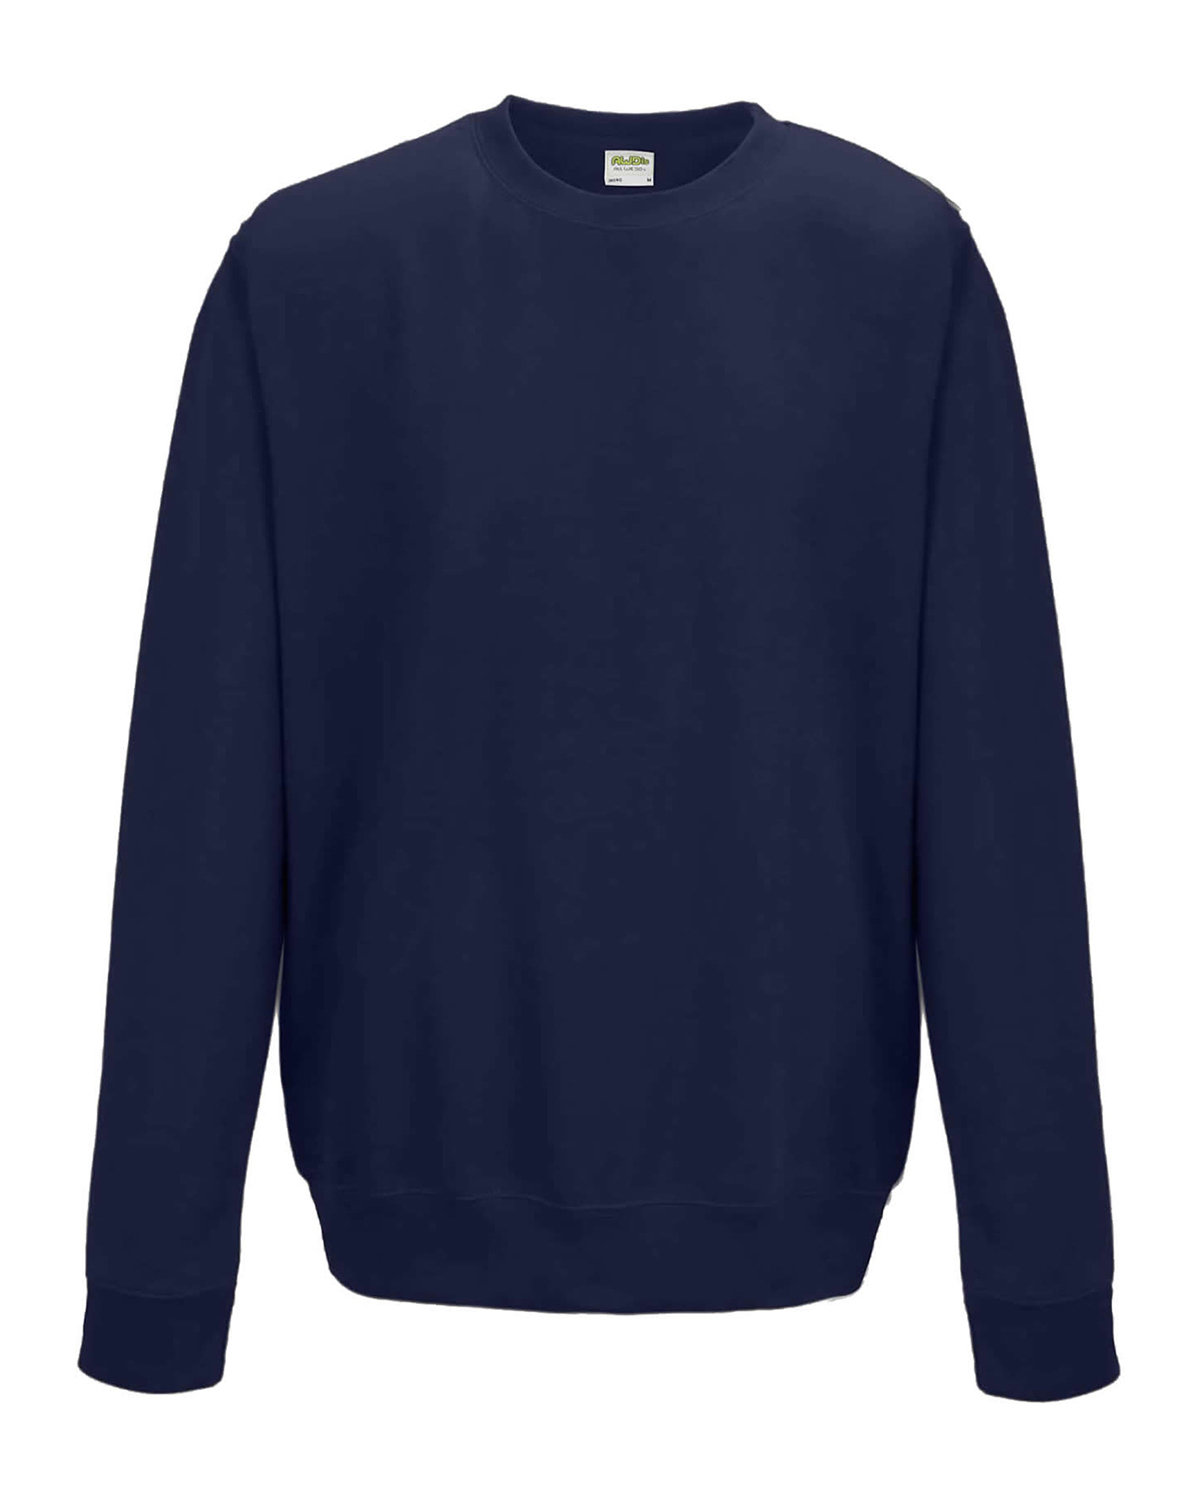 Just Hoods By AWDis Adult 80/20 Midweight College Crewneck Sweatshirt FRENCH NAVY